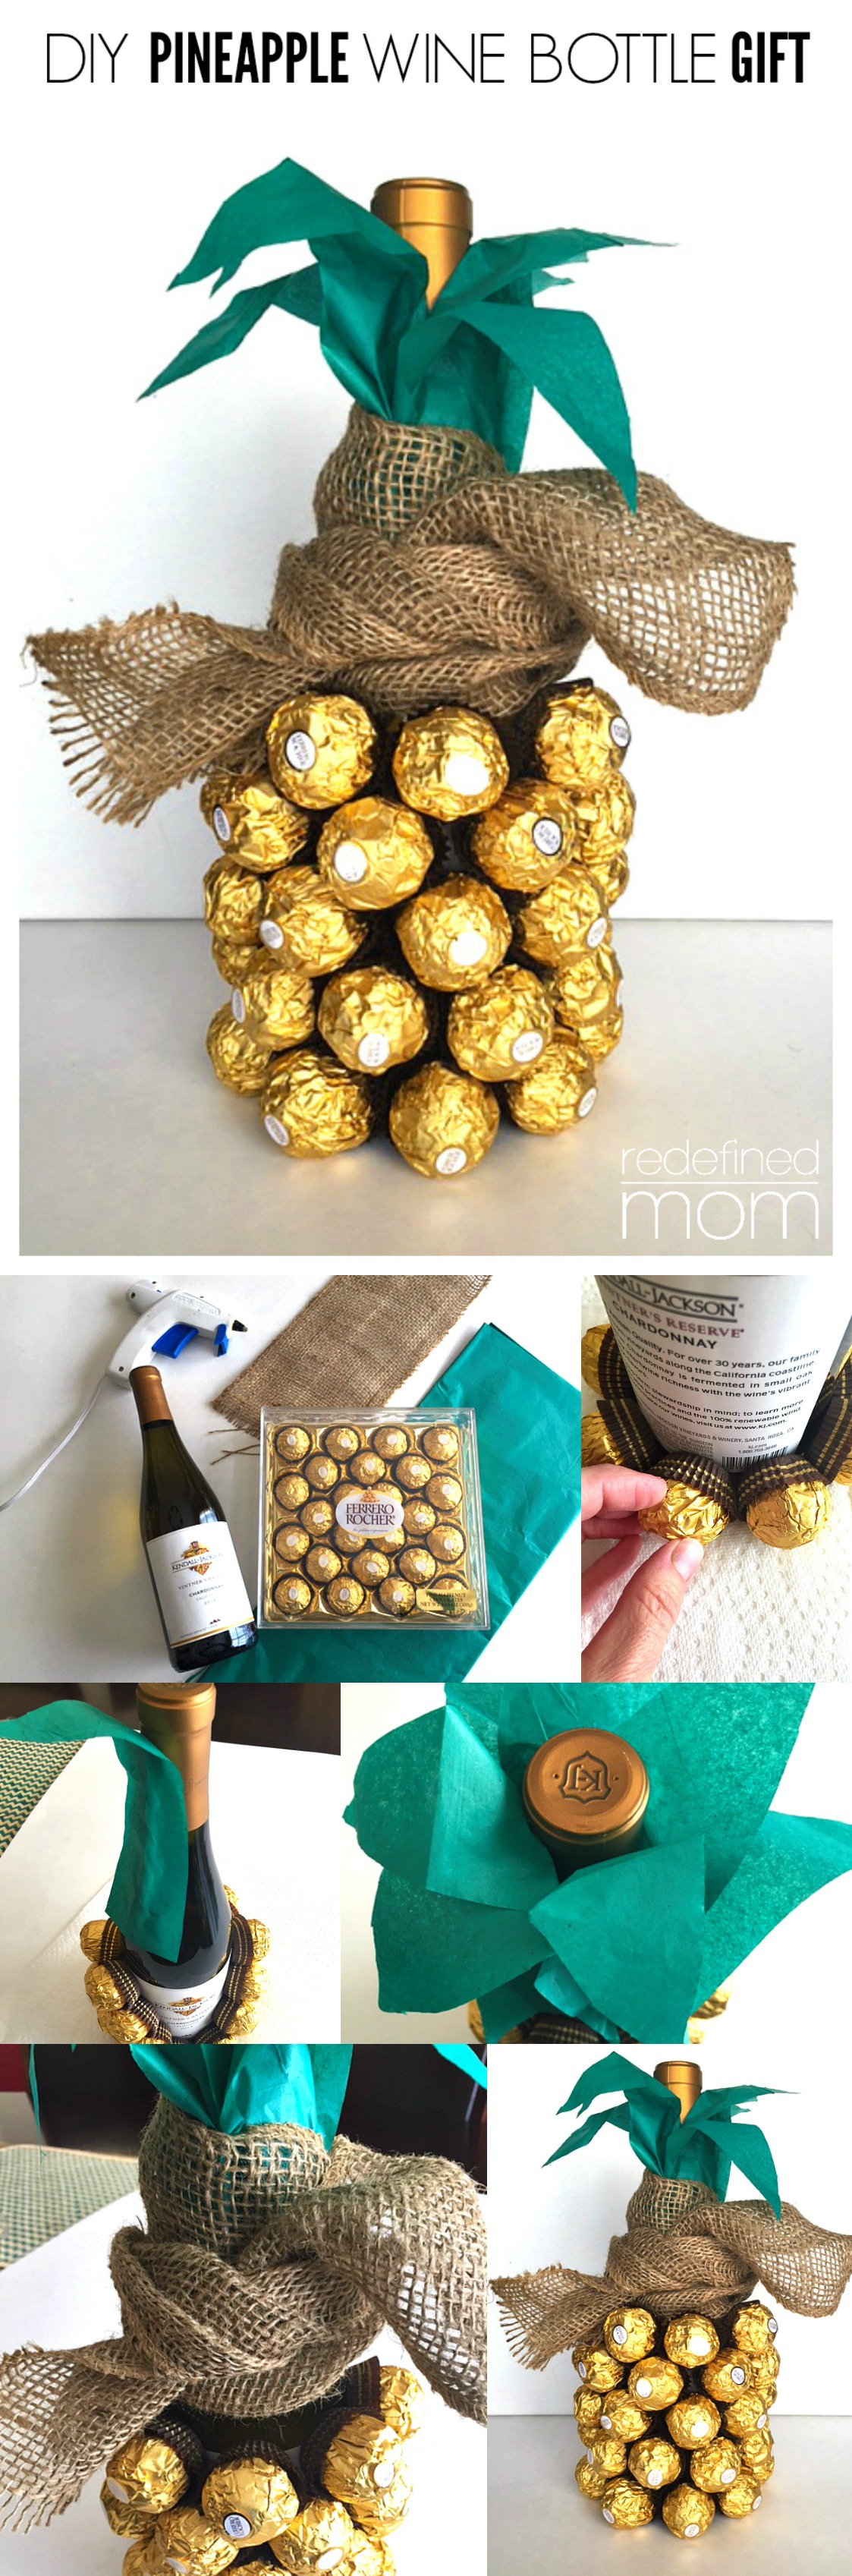 diy pineapple wine bottle gift tutorial